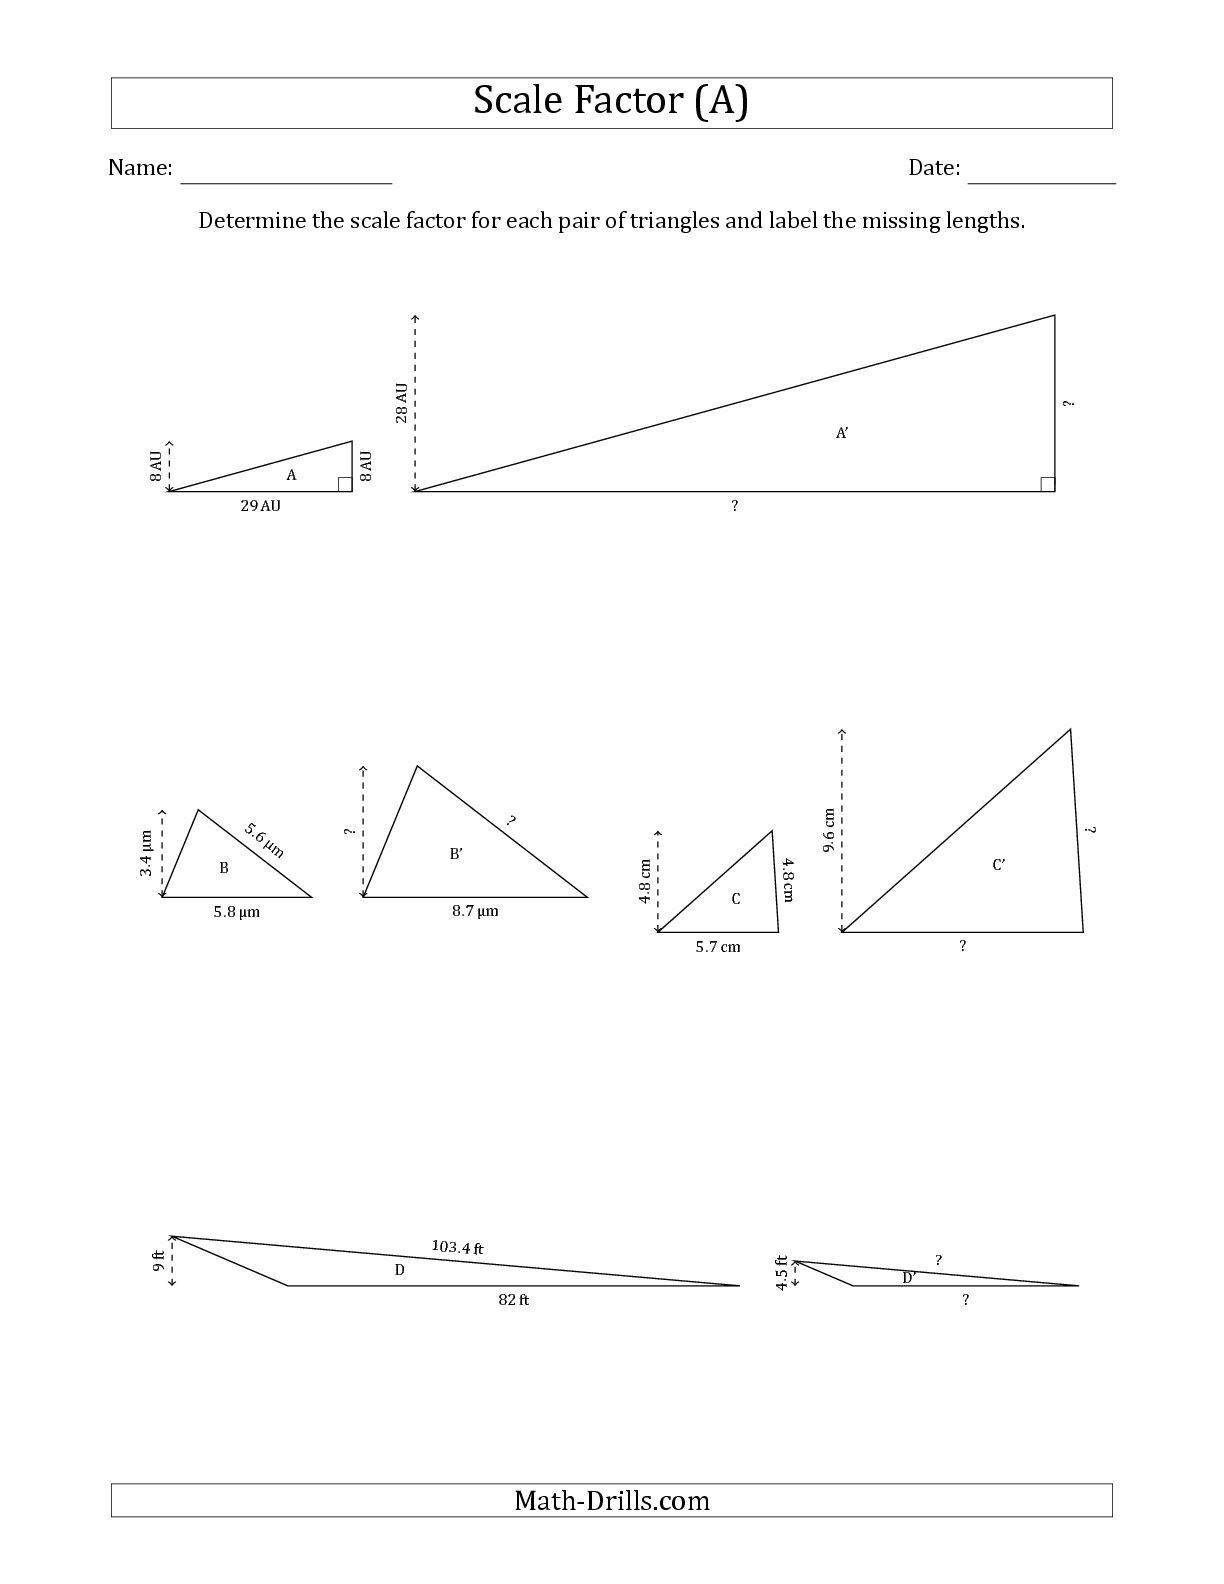 Scale Factor Worksheet with Answers the Determine the Scale Factor Between Two Triangles and